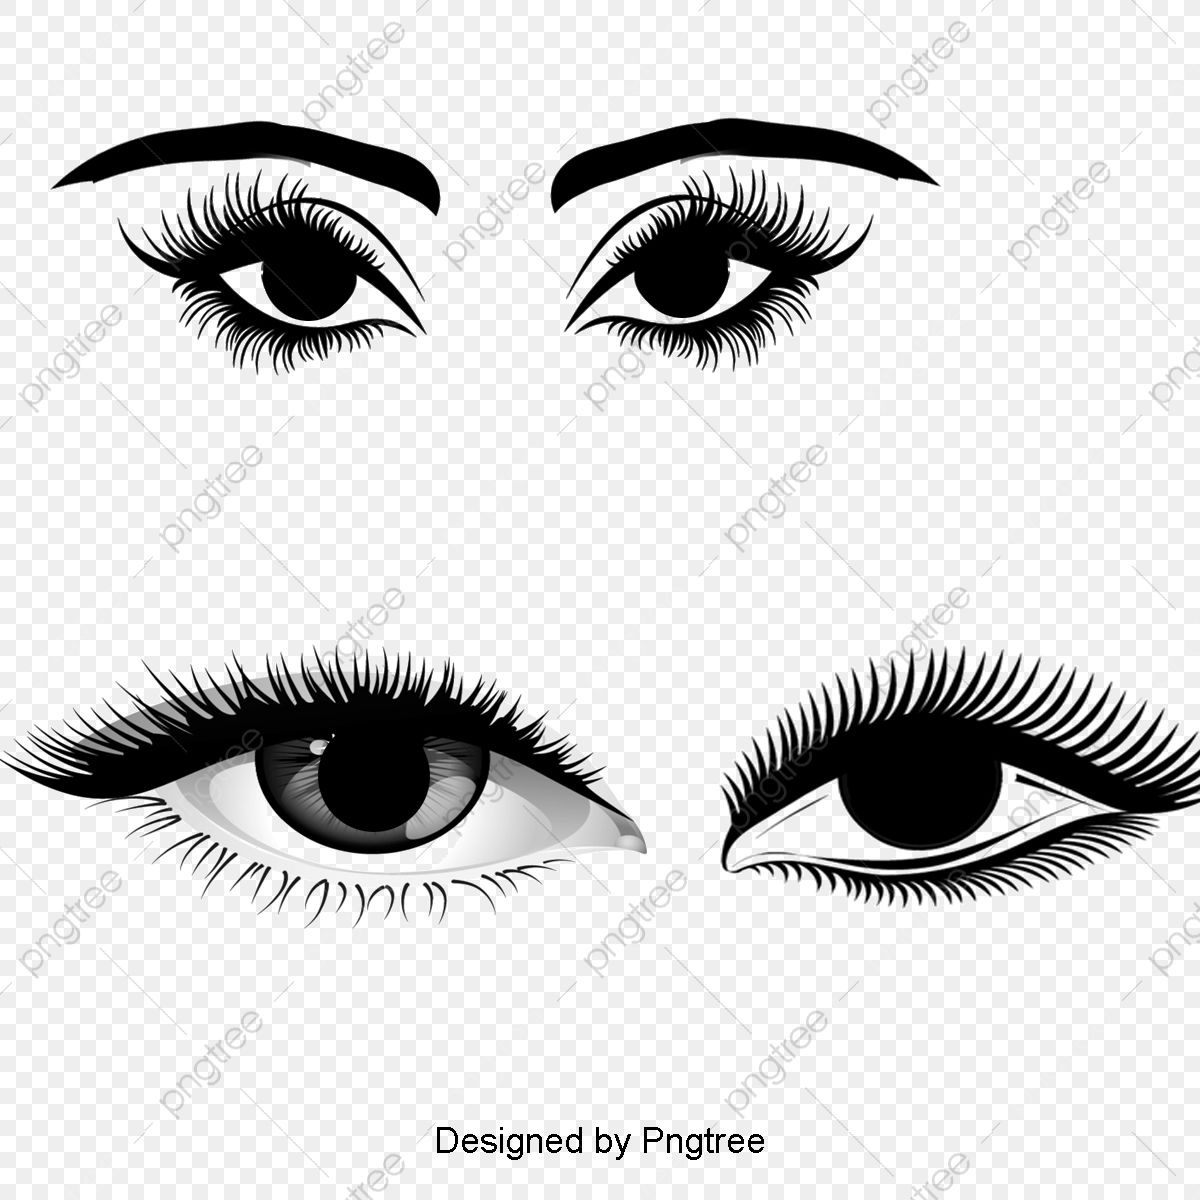 Sketch Black Cartoon Eyes Eyes Clipart Black And White Black Sketch Cartoon Eyes Png Transparent Clipart Image And Psd File For Free Download Cartoon Eyes Black Cartoon Eyes Clipart